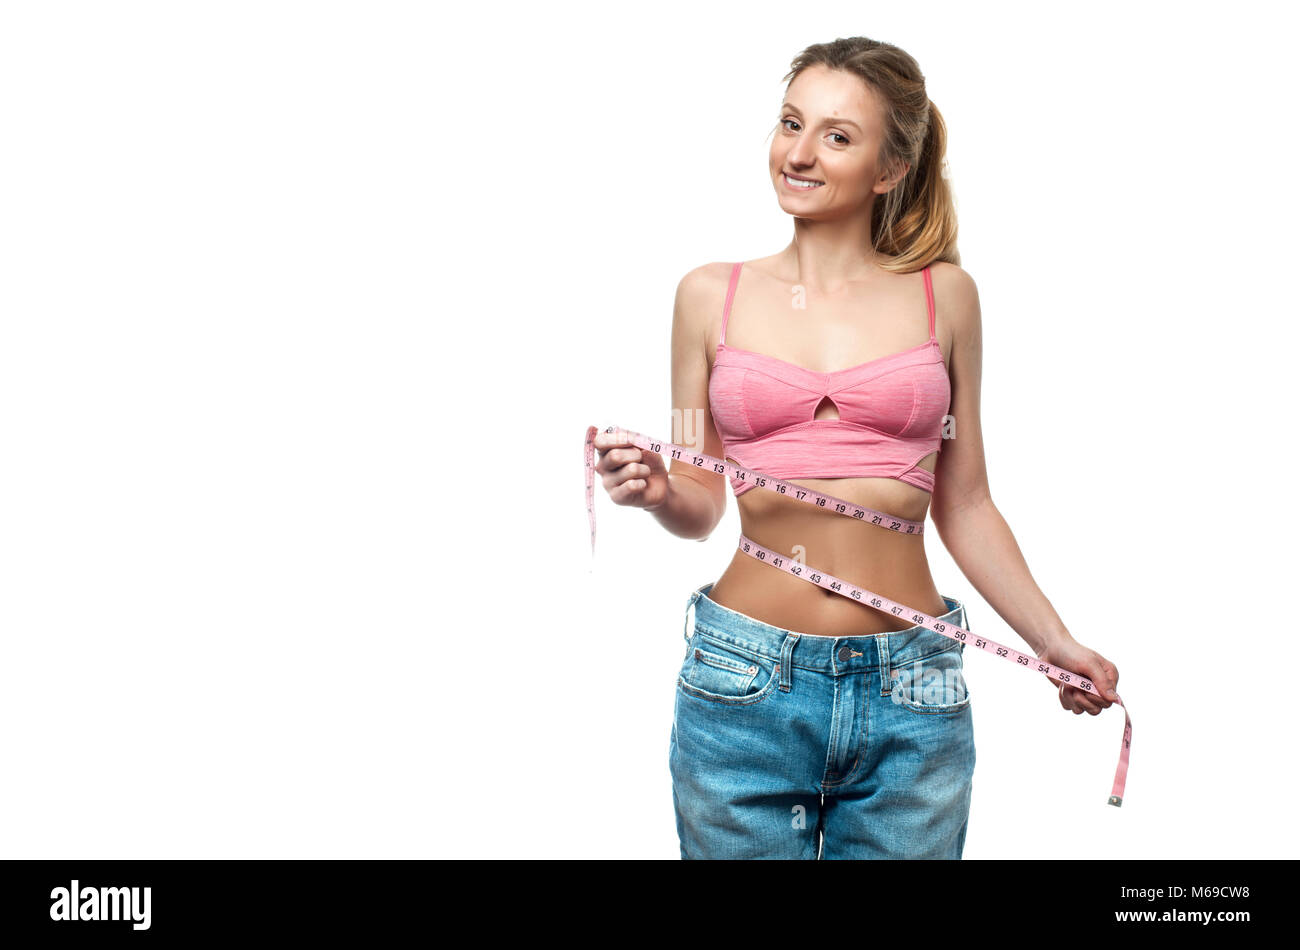 Weight loss hypnosis greenville sc